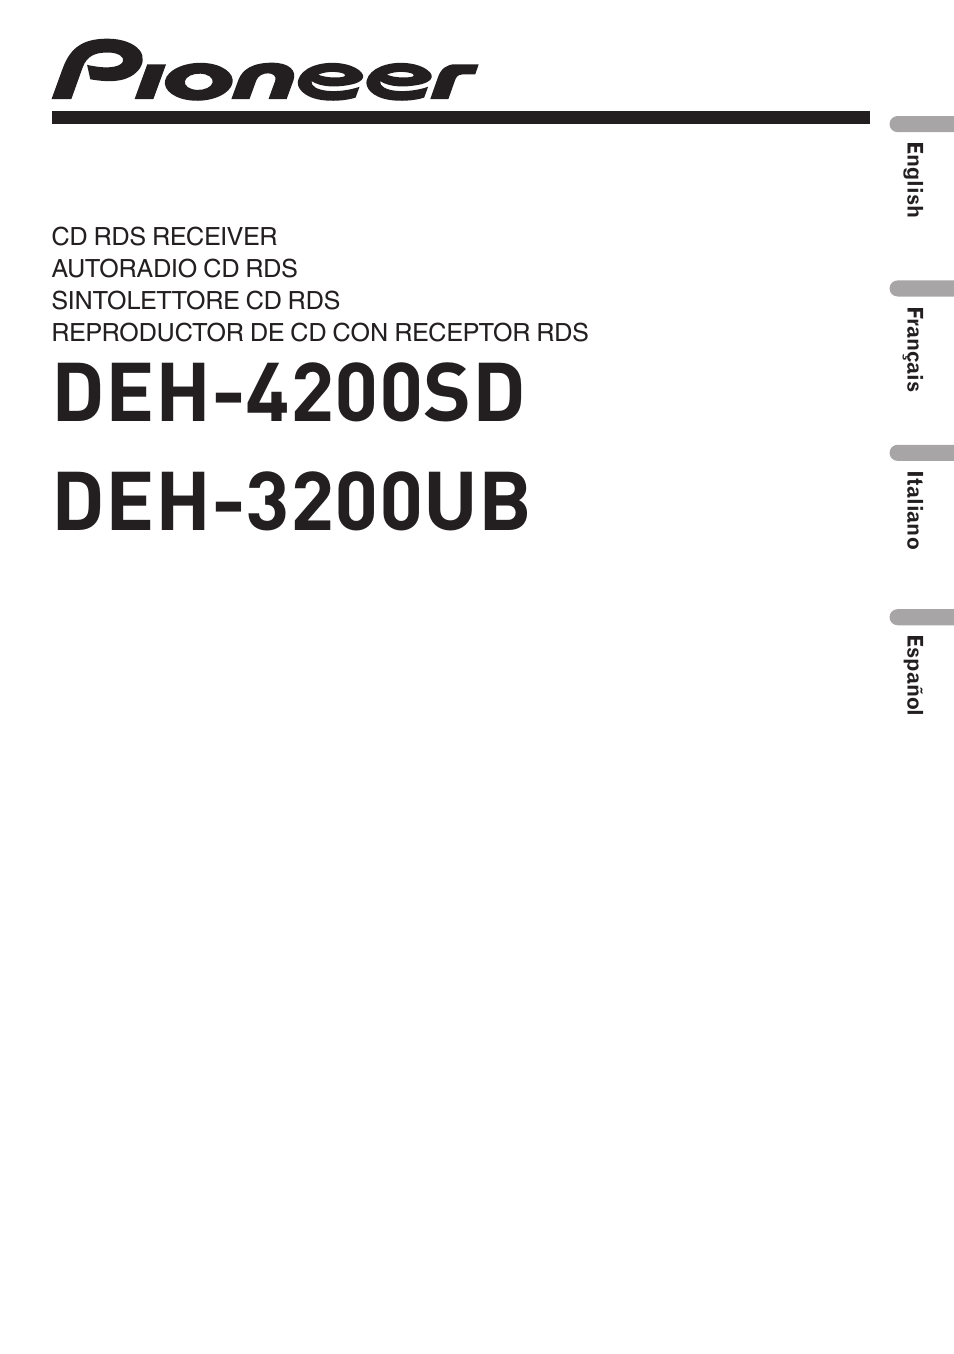 hight resolution of pioneer deh 3200ub user manual 116 pages also for deh 4200sdpioneer deh 3200 wiring diagram